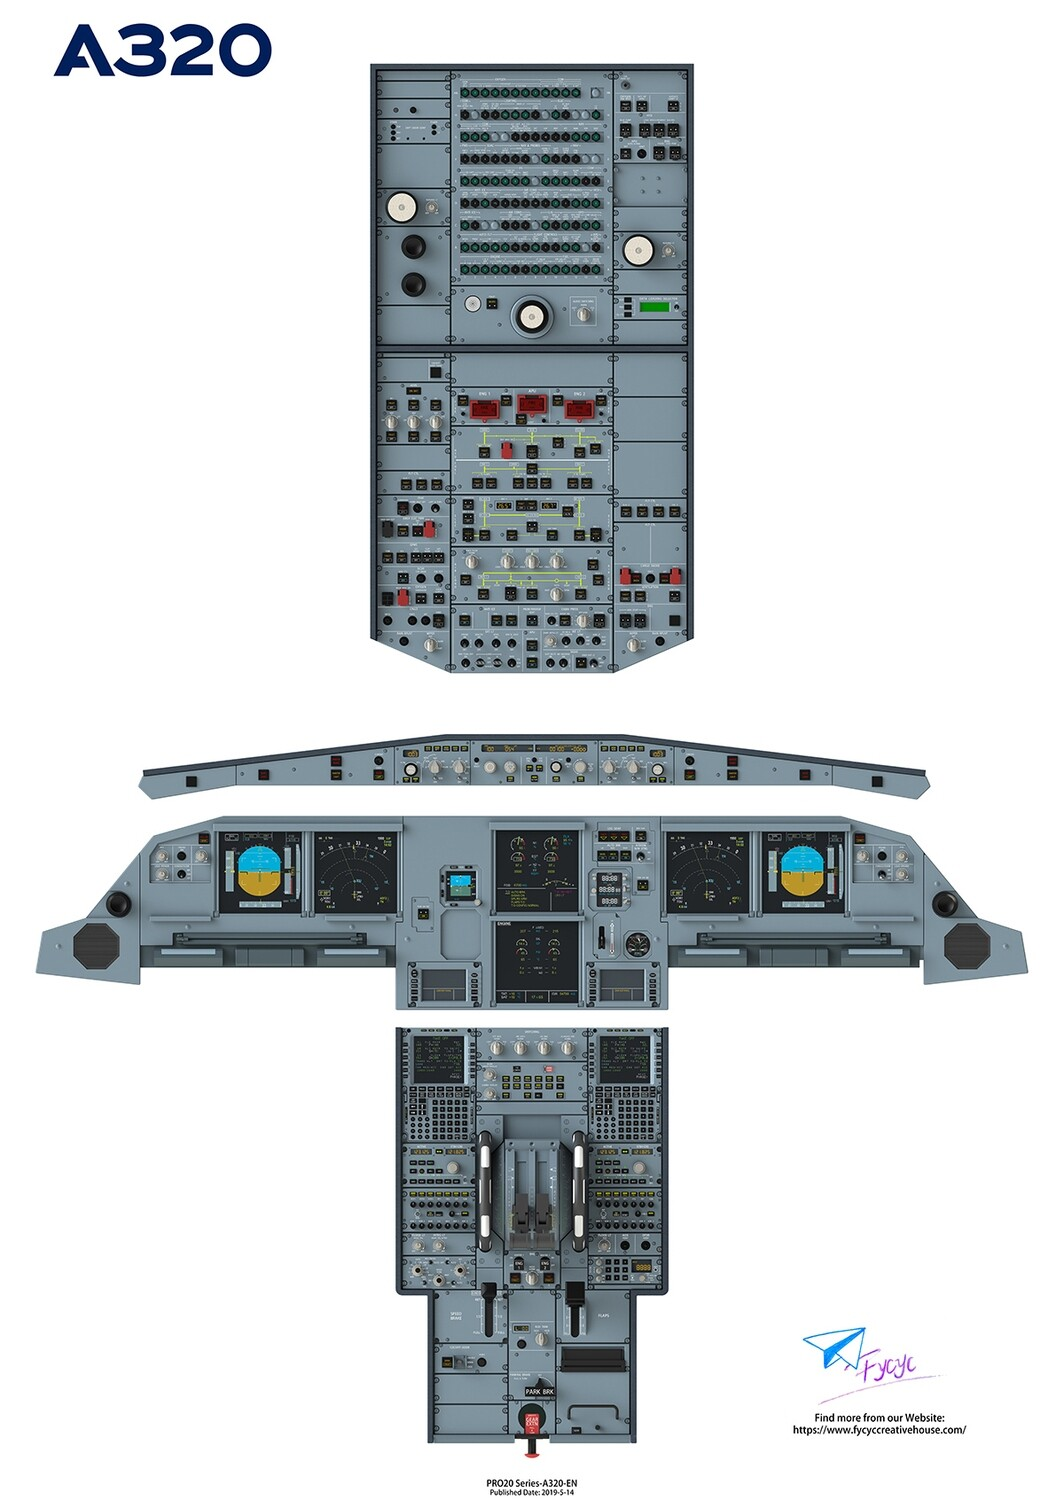 Airbus 320 Cockpit Poster